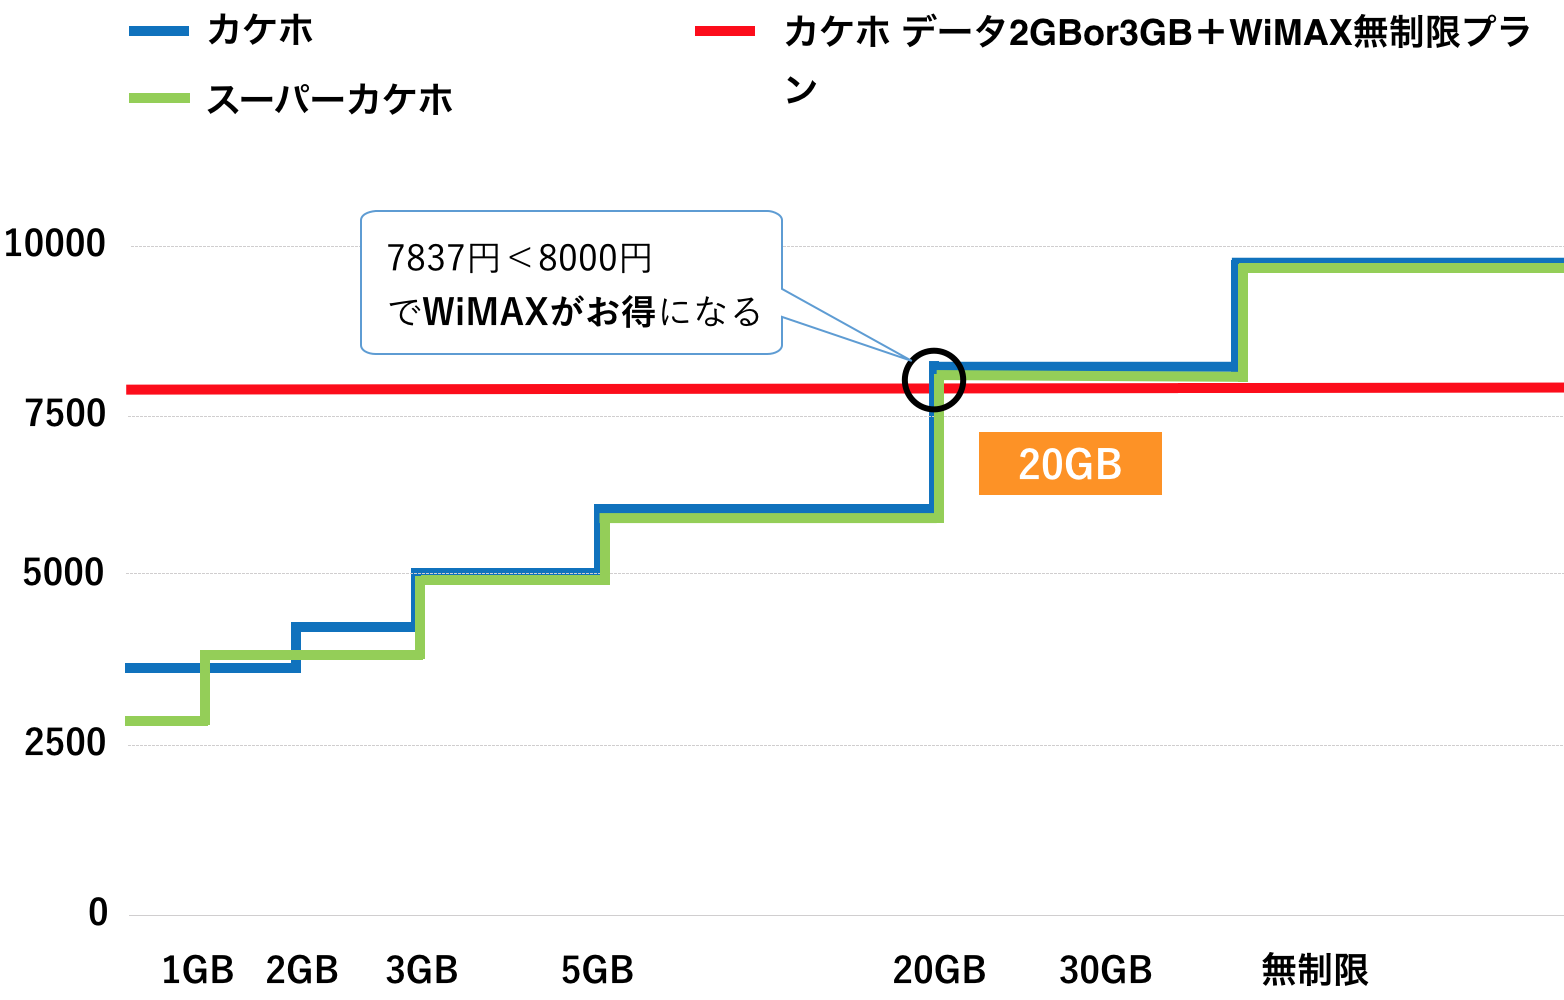 WiMAX スマホ au